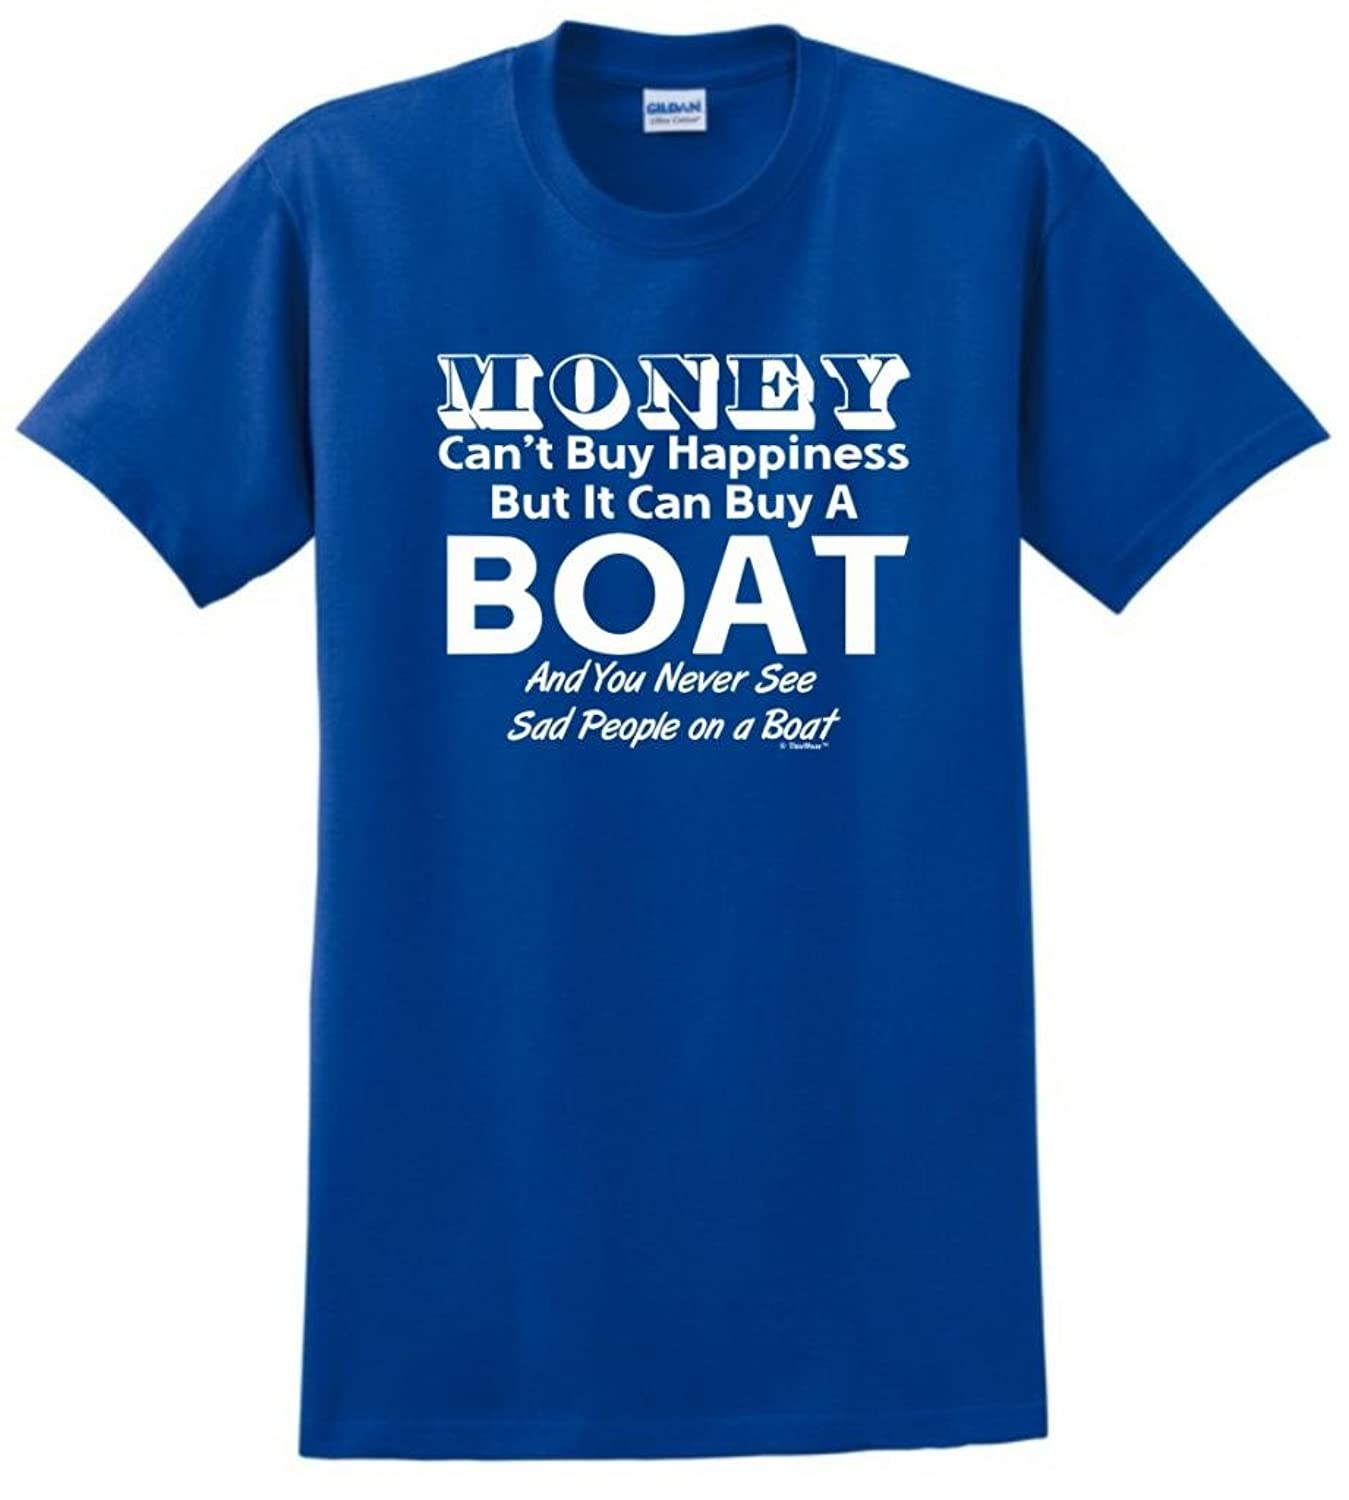 Money Can't Buy Happiness But It Can Buy a Boat T-Shirt